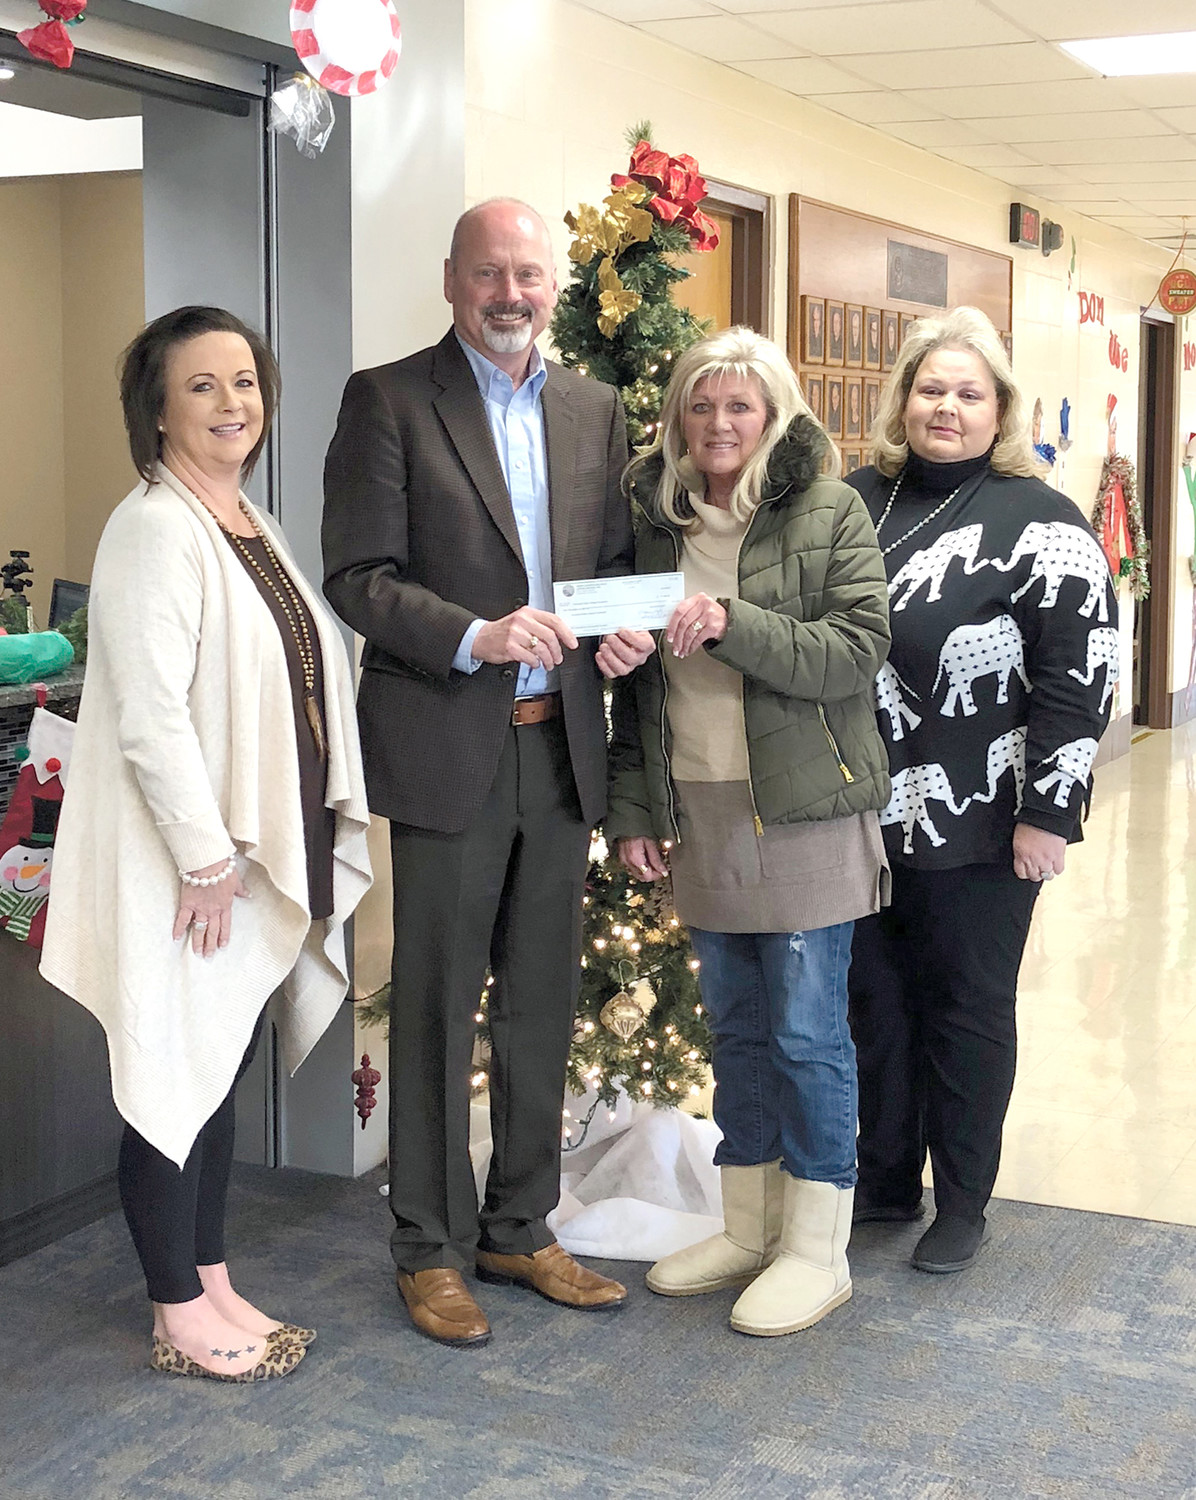 The River Counties Association of Realtors recently presented its annual gift of $1,000 to the Cleveland State Foundation to support student scholarships. The purpose of RCAR is to create a professional environment for its members, enabling them to provide ethical, high-quality real estate services to their communities. From left are Tara Hampton, association executive; Dr. Bill Seymour, CSCC president; Marcia Botts, 2017 MLS president; and Cathy McCracken, 2017 MLS treasurer.